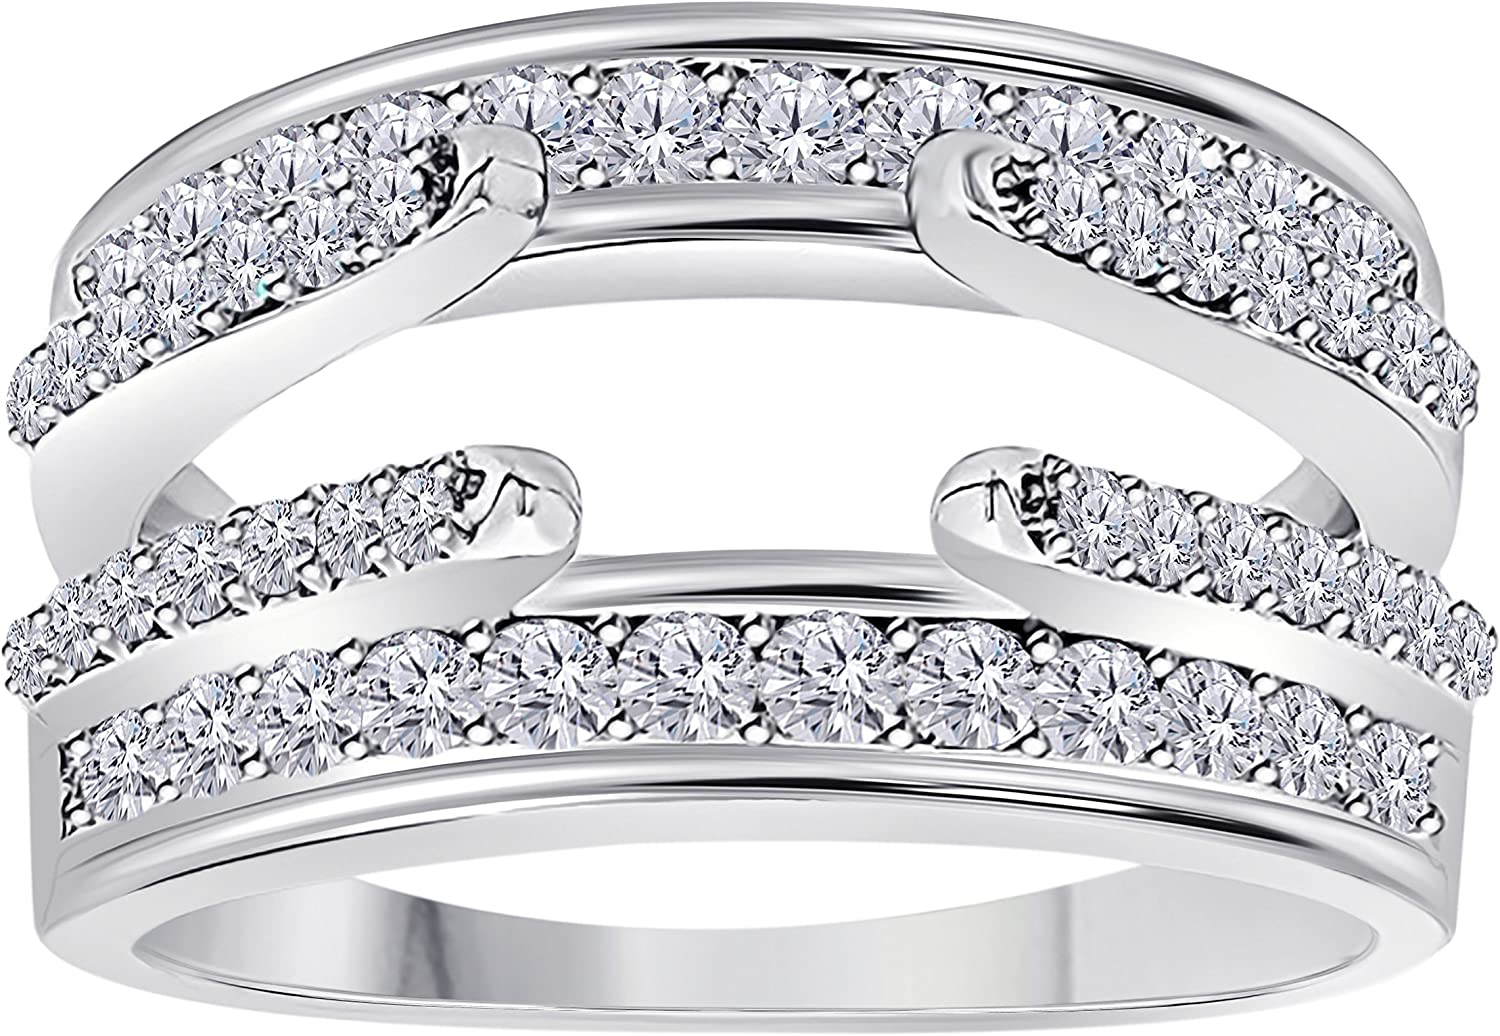 .925 Sterling Silver Plated Combination Curved Style Cathedral Wedding Ring Guard Enhancer with Cubic Zirconia 1.10 ct. tw.